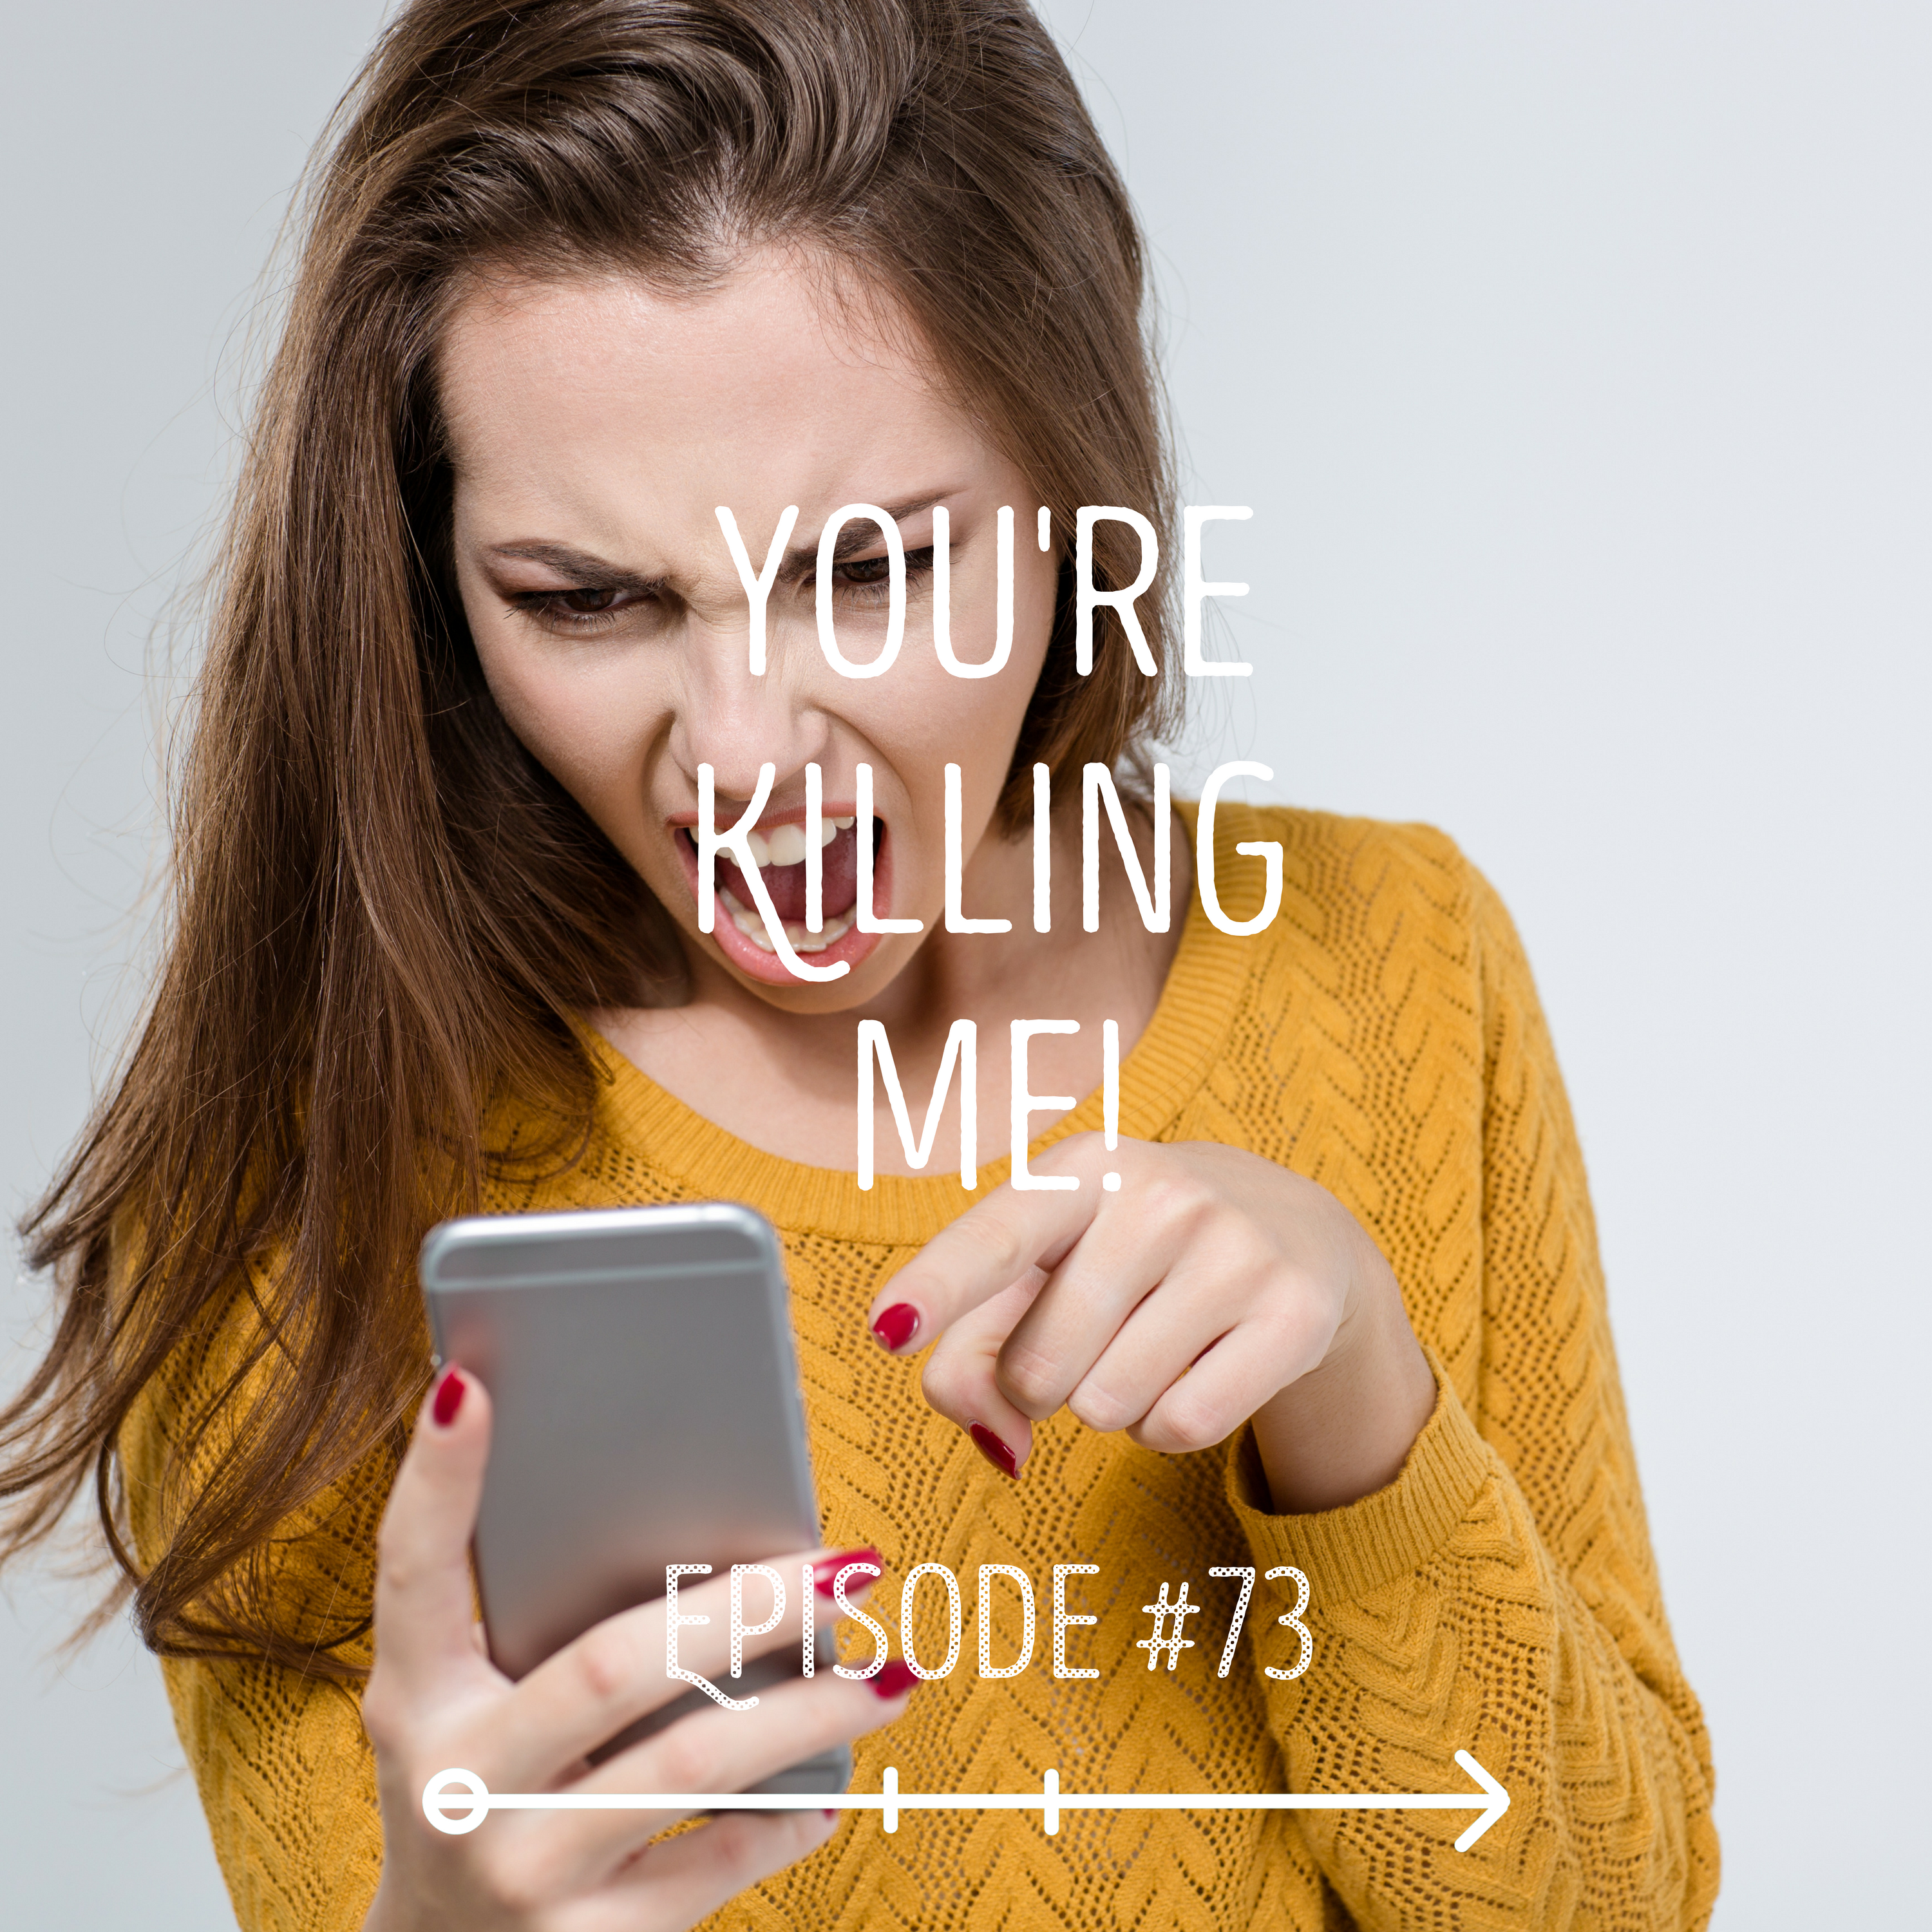 You're Killing Me! : EPISODE 73